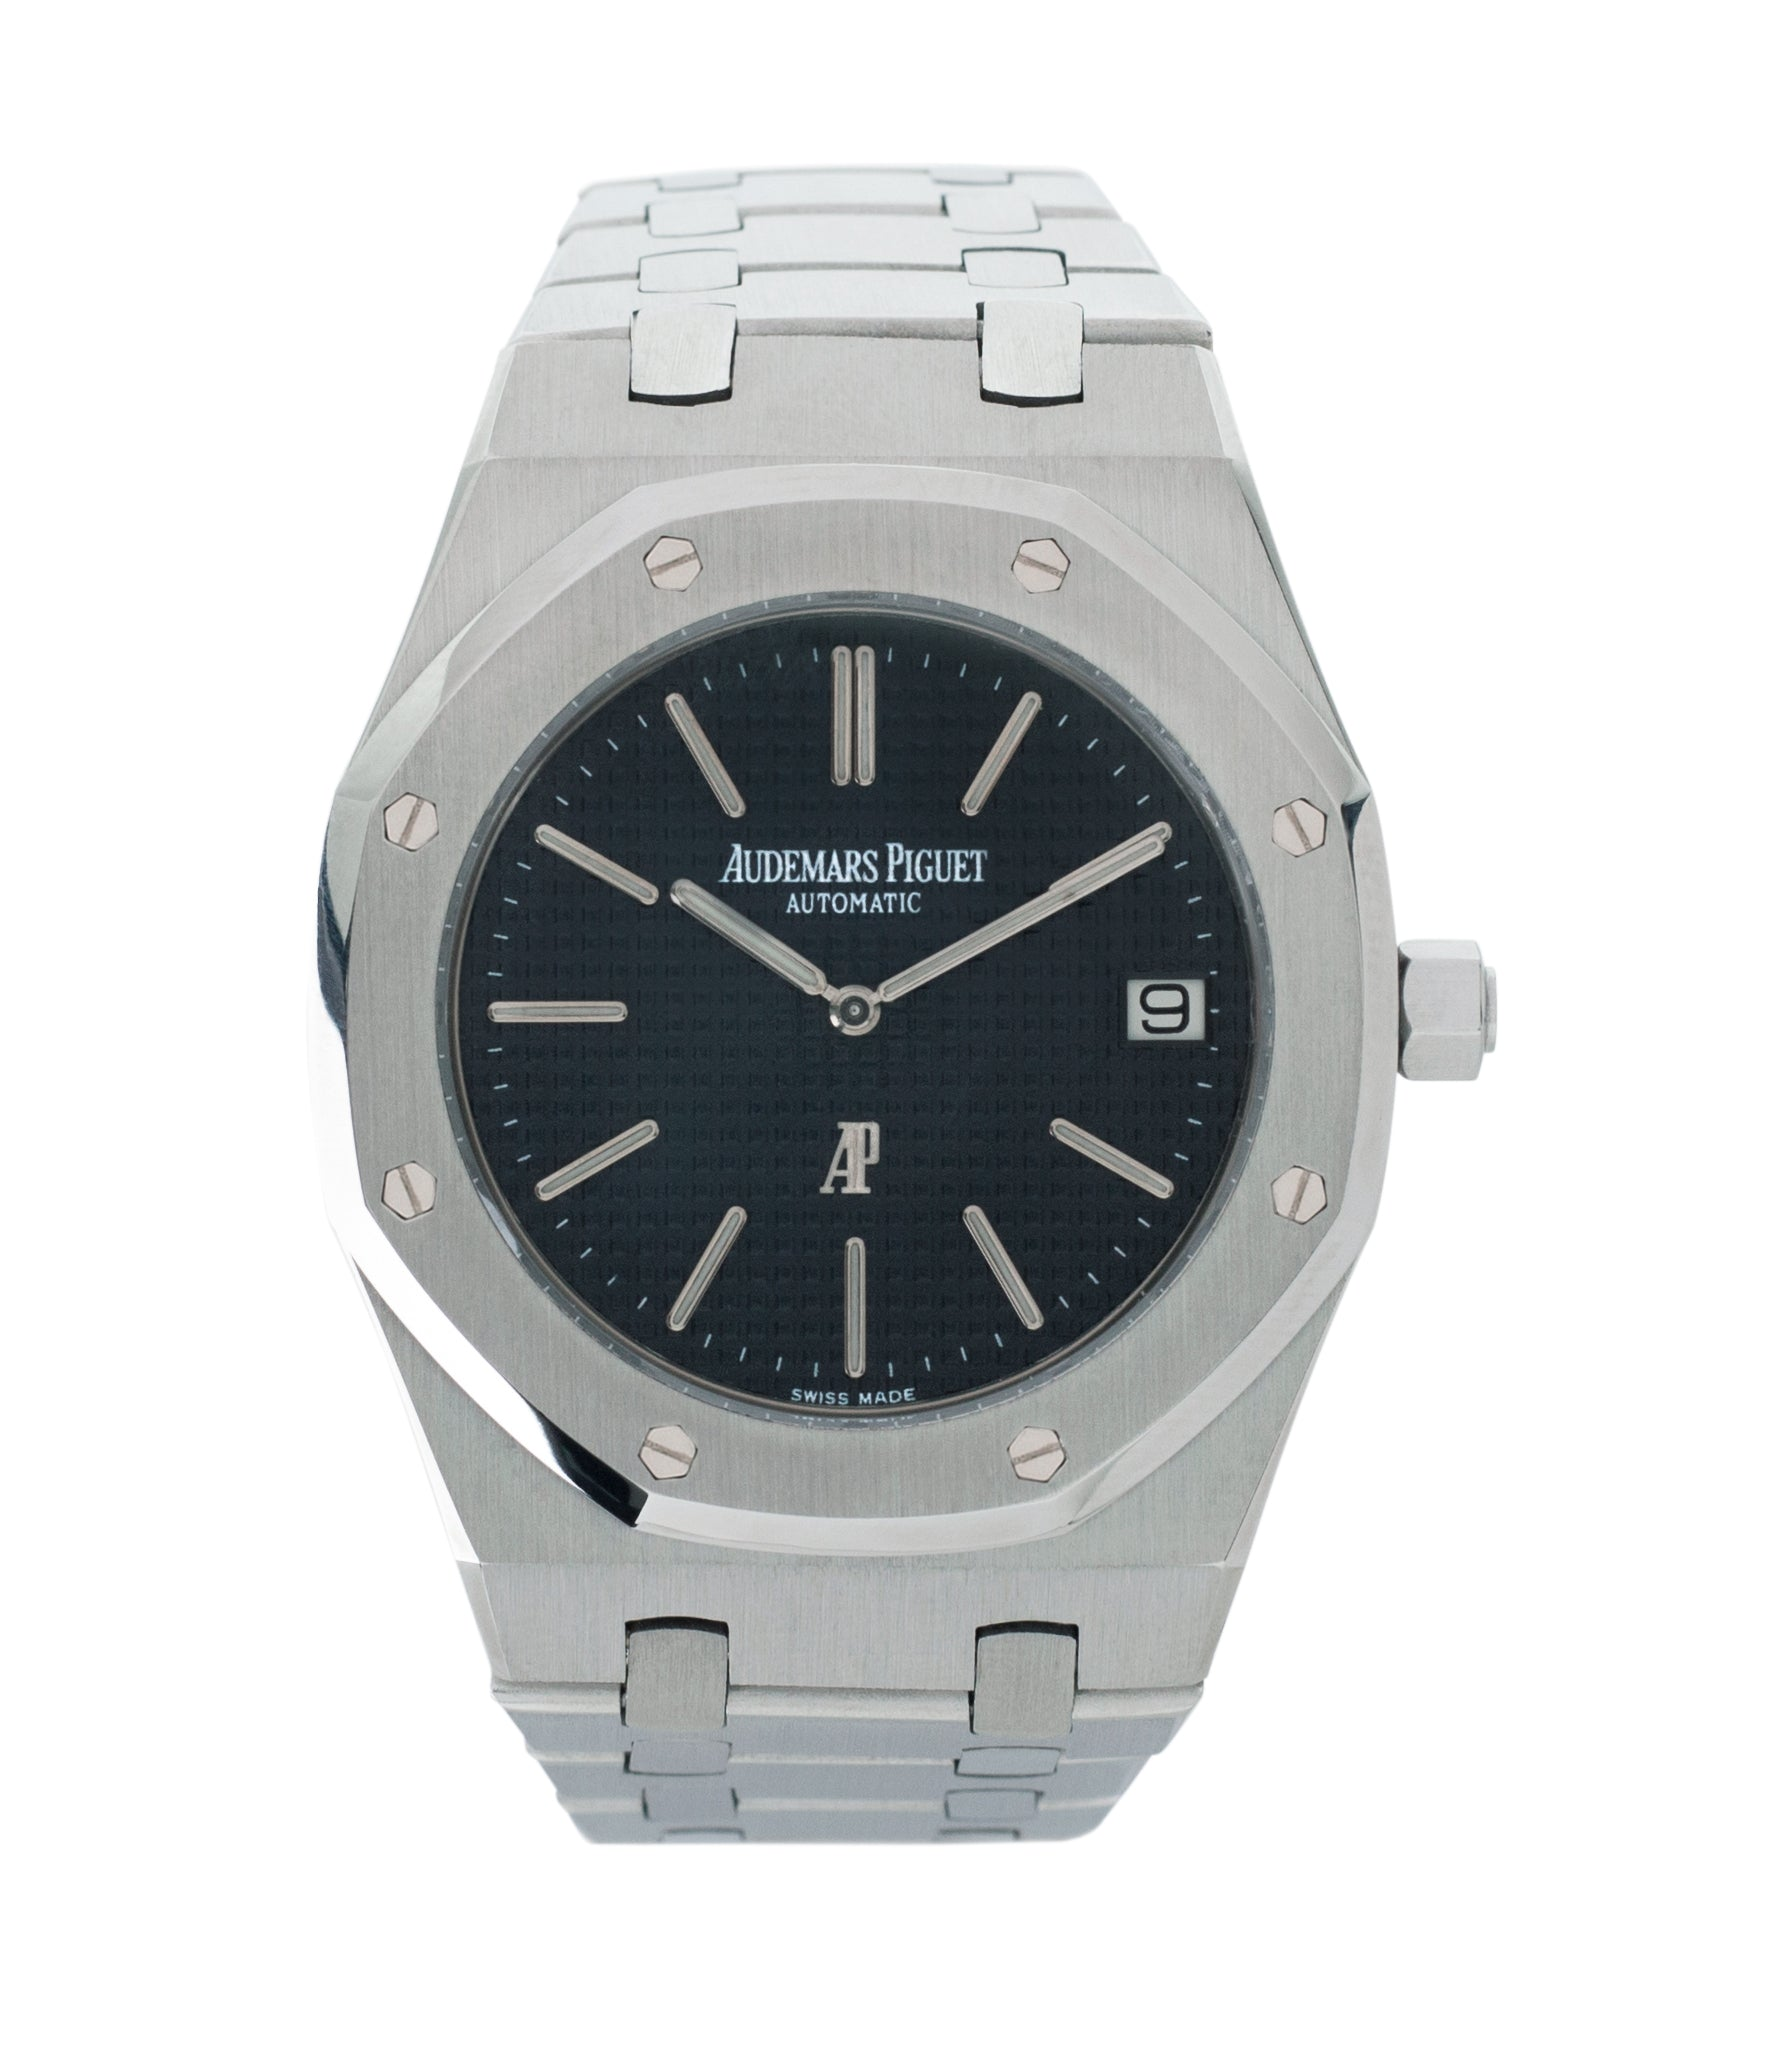 buy Audemars Piguet 5402 Royal Oak A series steel rare sport watch online at A Collected Man London UK vintage watch specialist